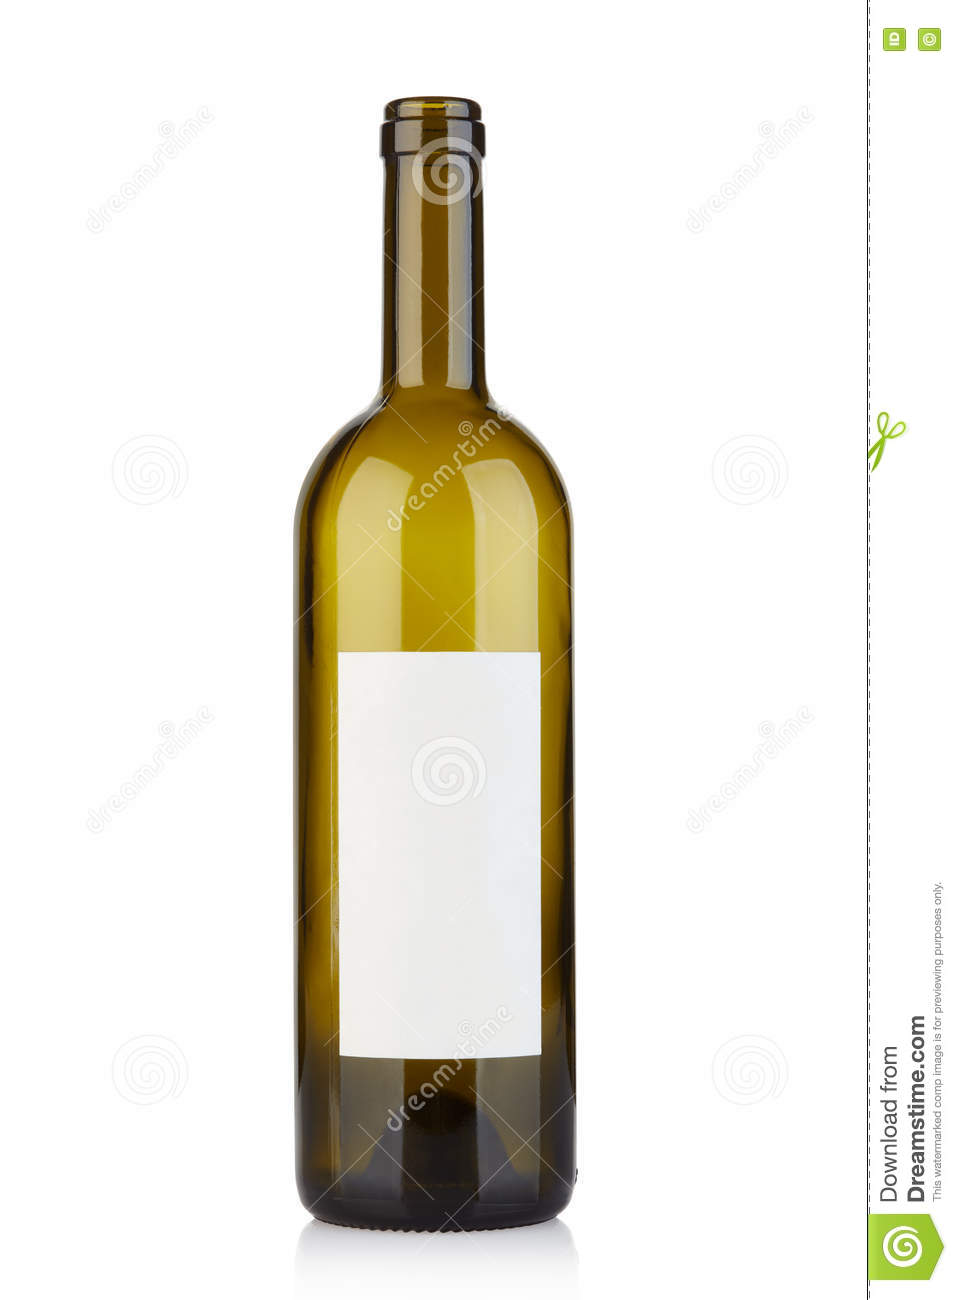 videz la bouteille de vin ouverte avec le label vide sur le blanc photo stock image 70303107. Black Bedroom Furniture Sets. Home Design Ideas